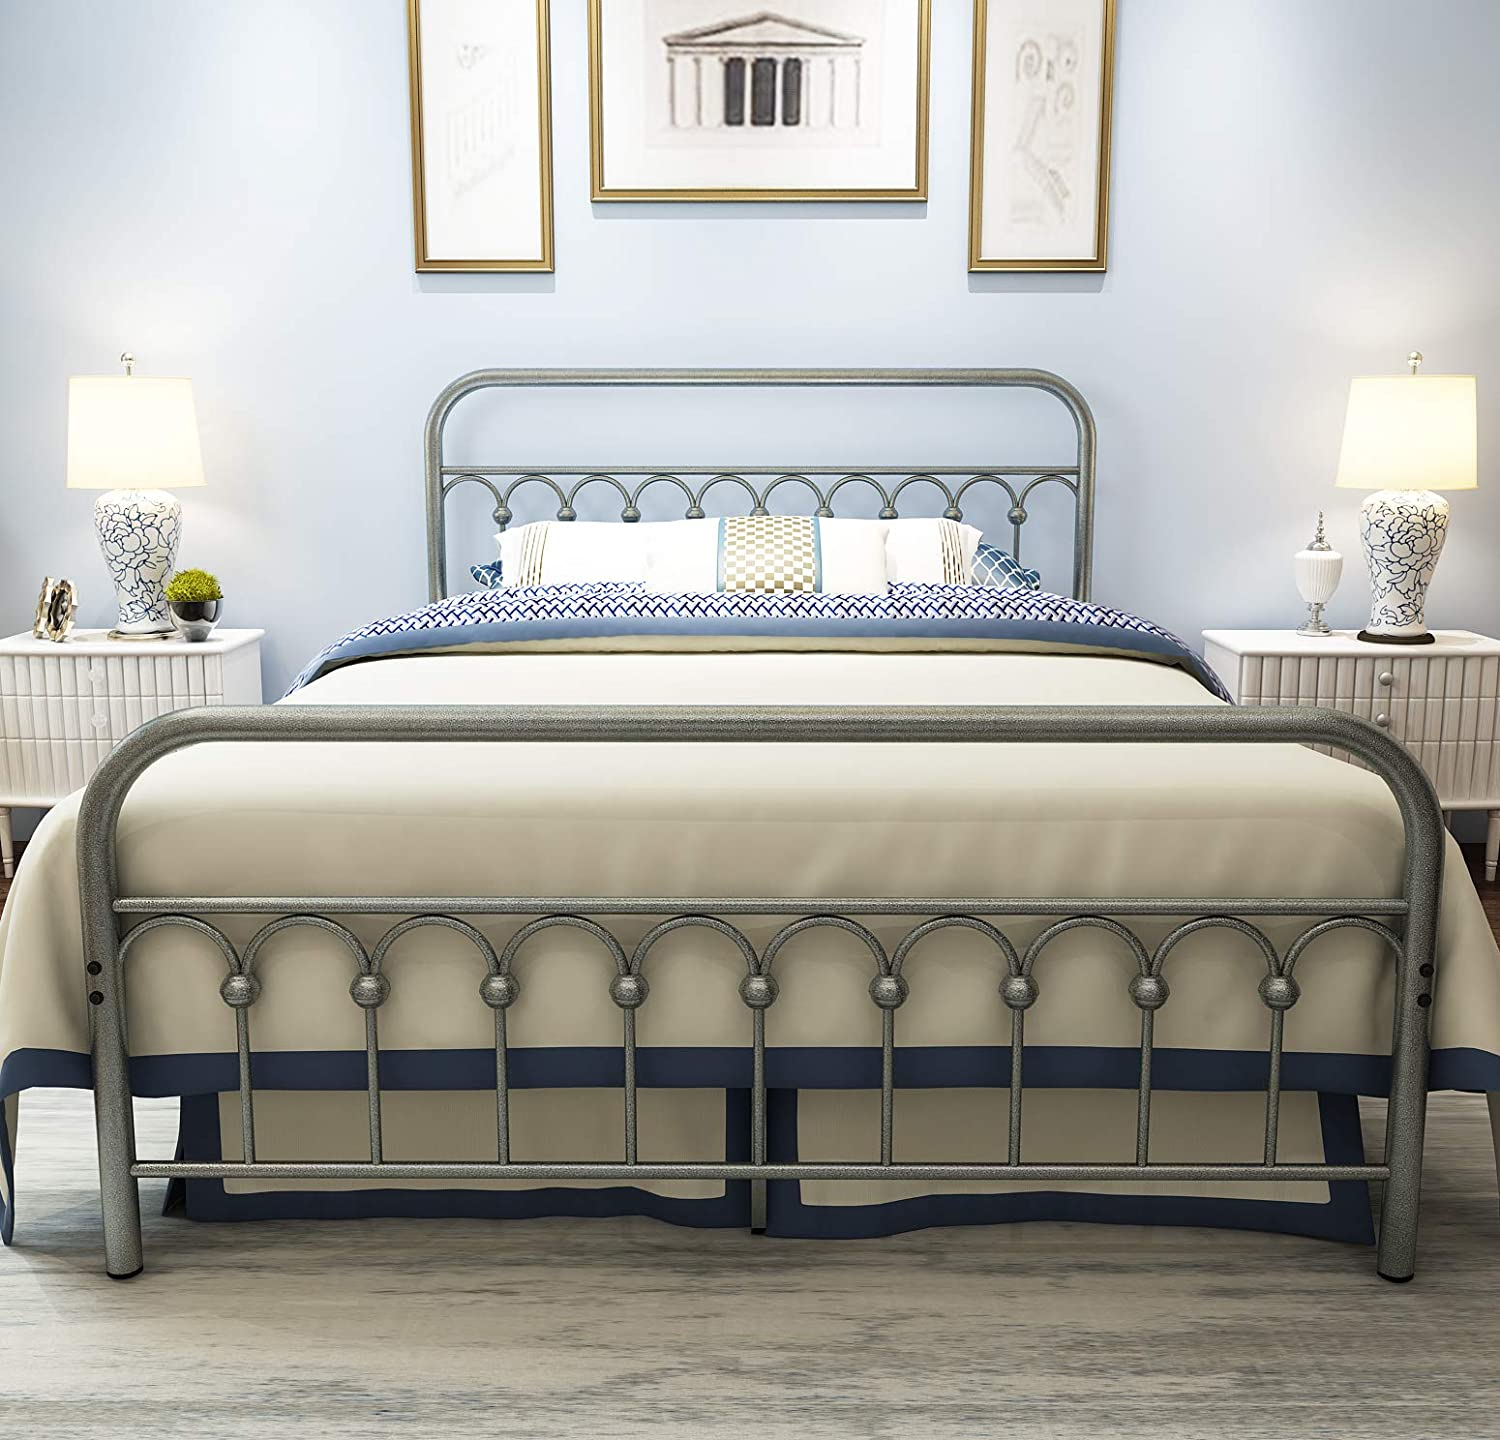 MUSEHOME Upholstered Knighthood Platform Bed No Boxspring Needed, King